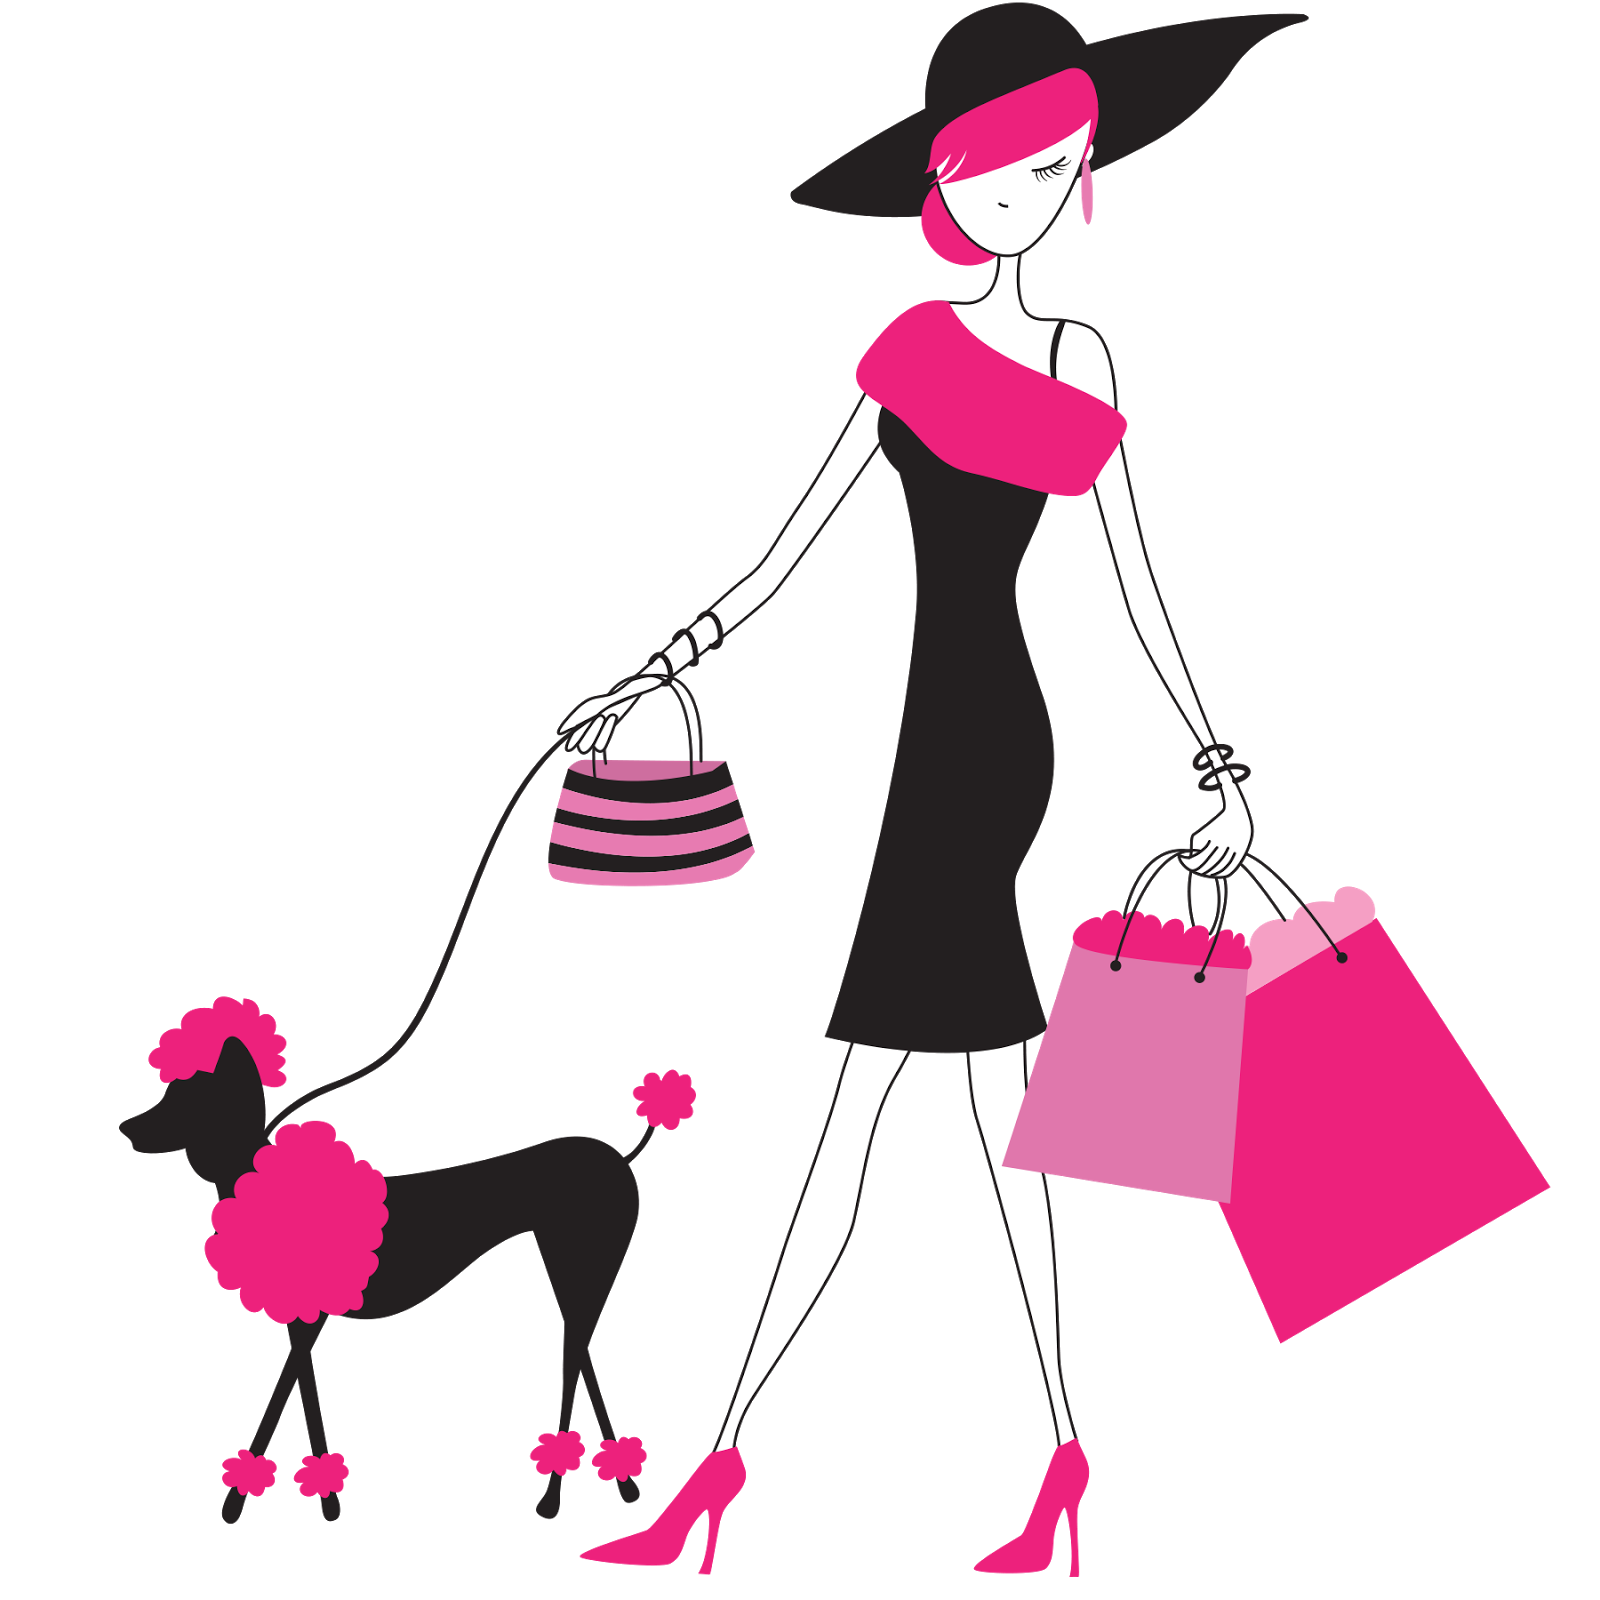 sexy paris clipart oh my fiesta for ladies french poodle clipart free french poodle clipart images